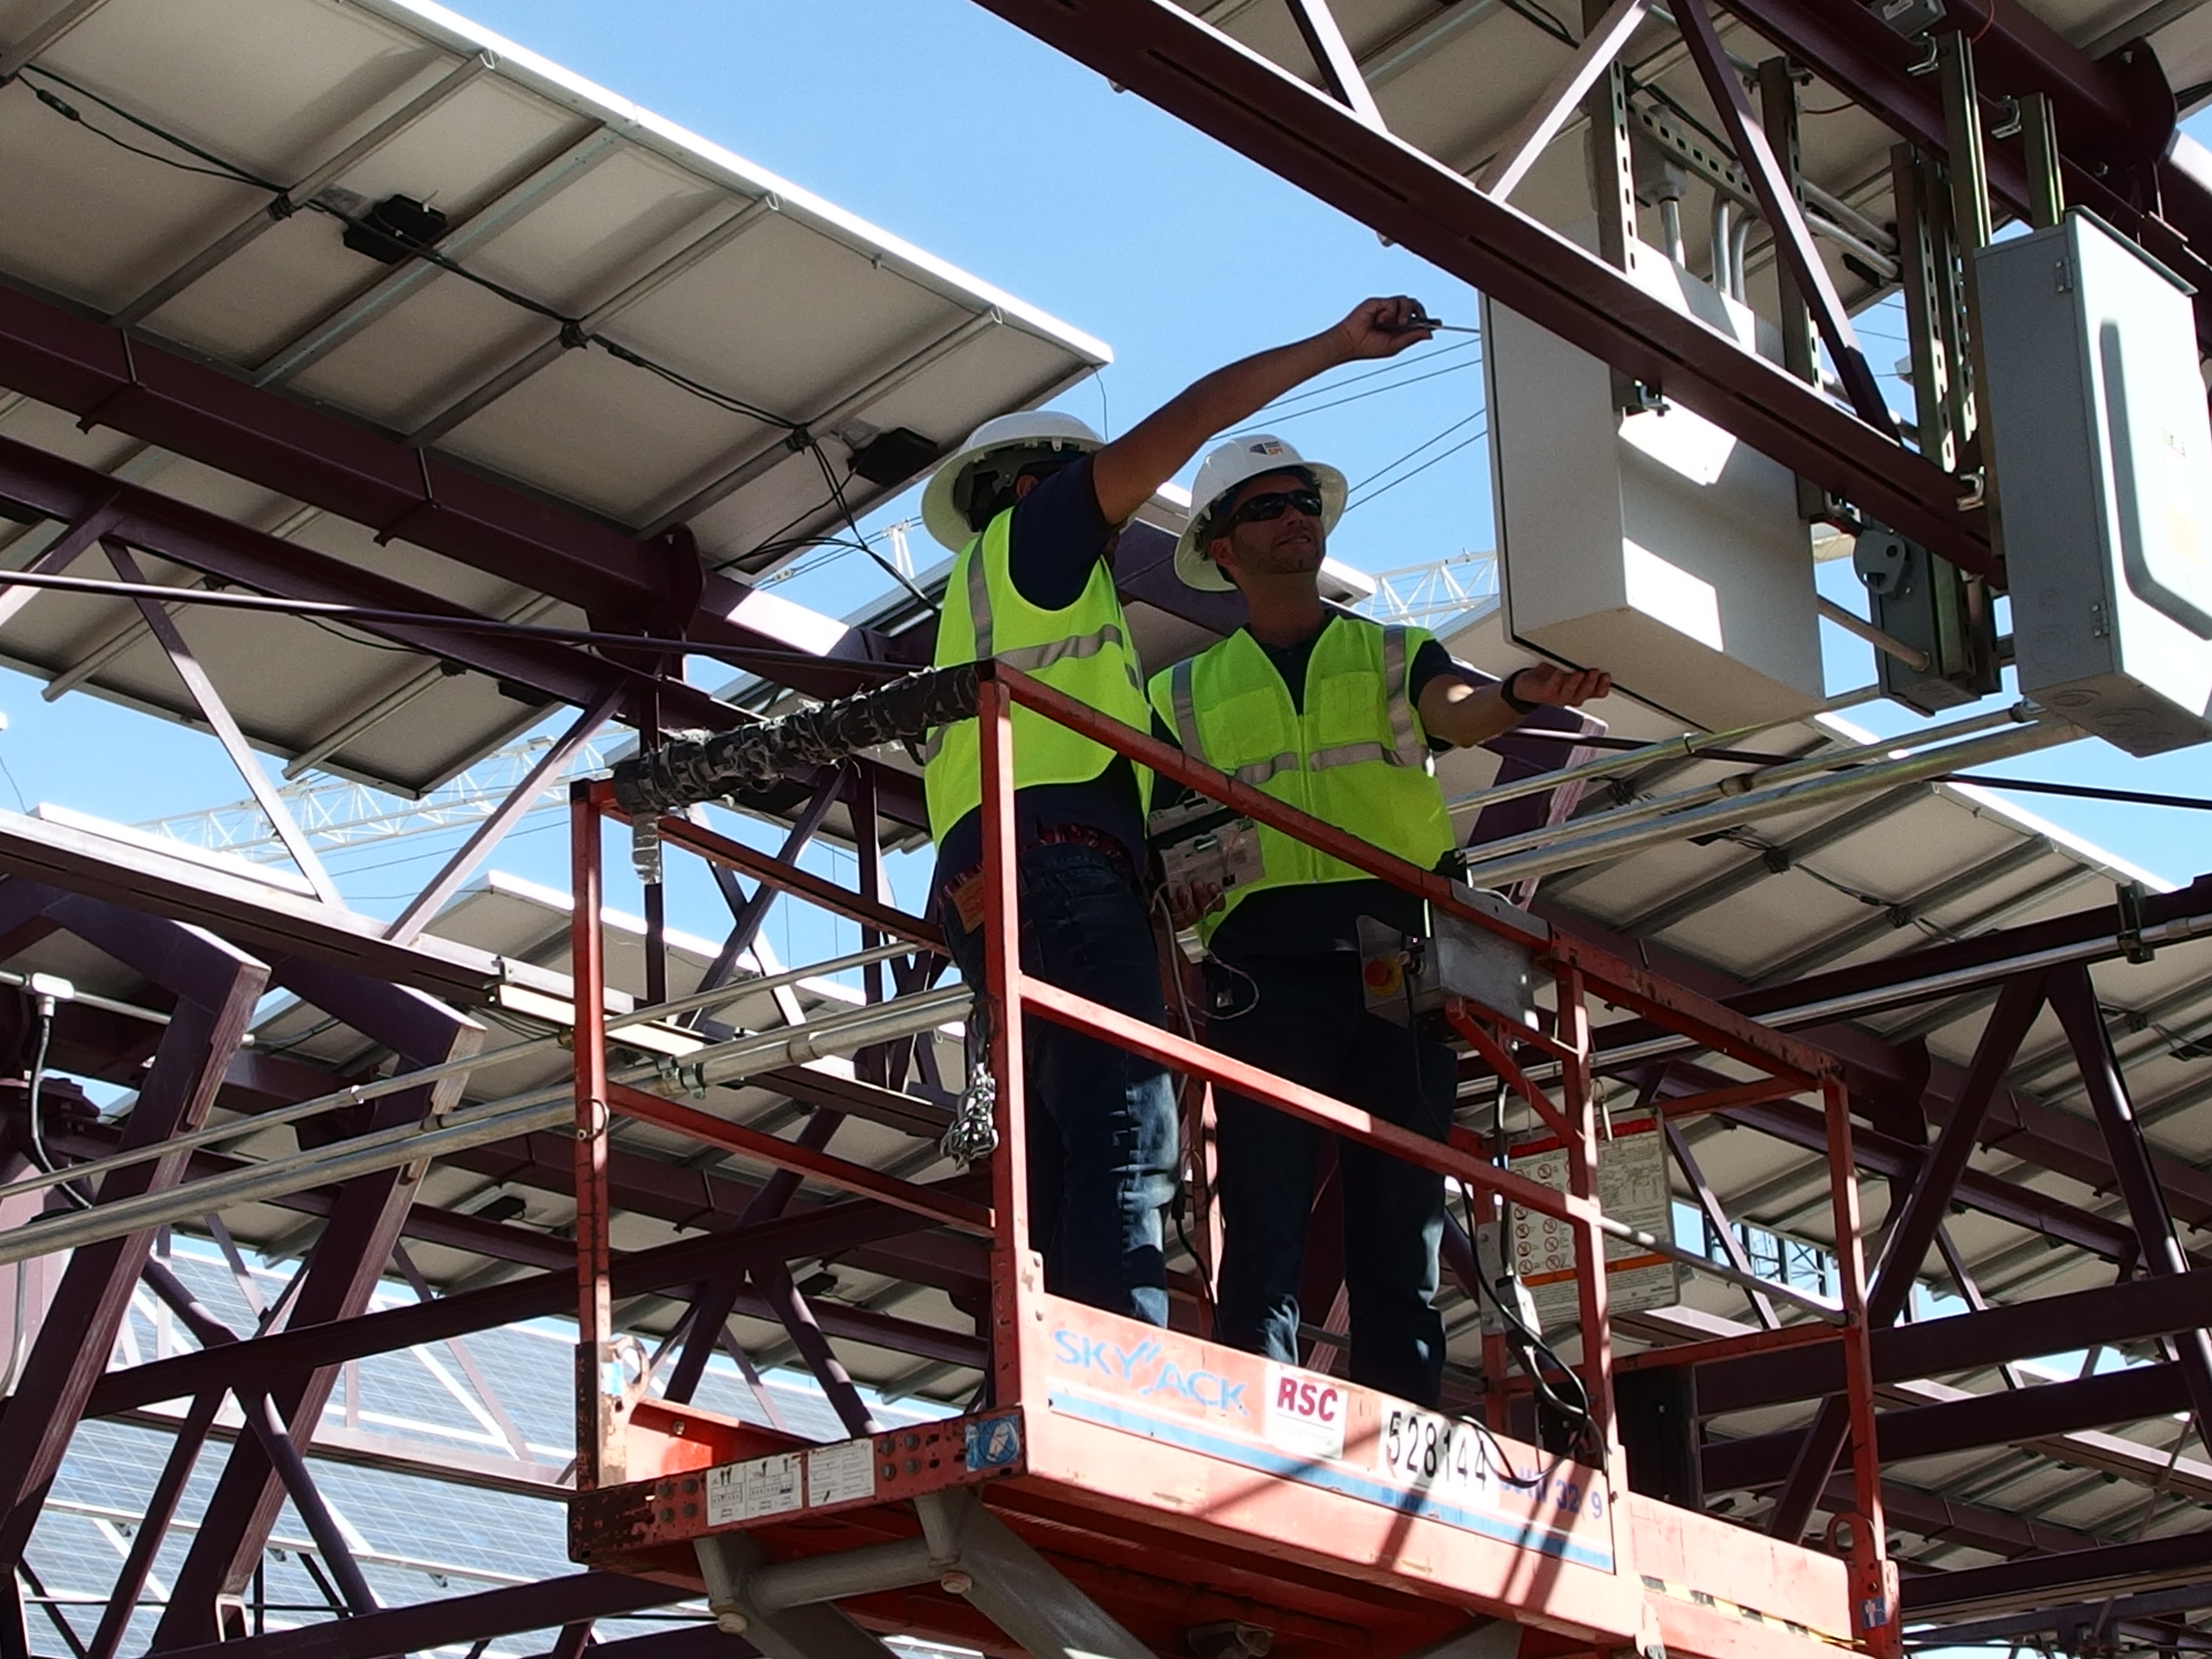 The SunLink PowerCare team has taken on O&M responsibility for a group of tracker and rooftop solar projects installed at Arizona State University (ASU). ASU has elected to install VERTEX, SunLink's next-generation, secure SCADA and performance monitoring platform, on the tracker installations for which SunLink will be responsible to improve its O&M efficiencies. (Photo: Business Wire)